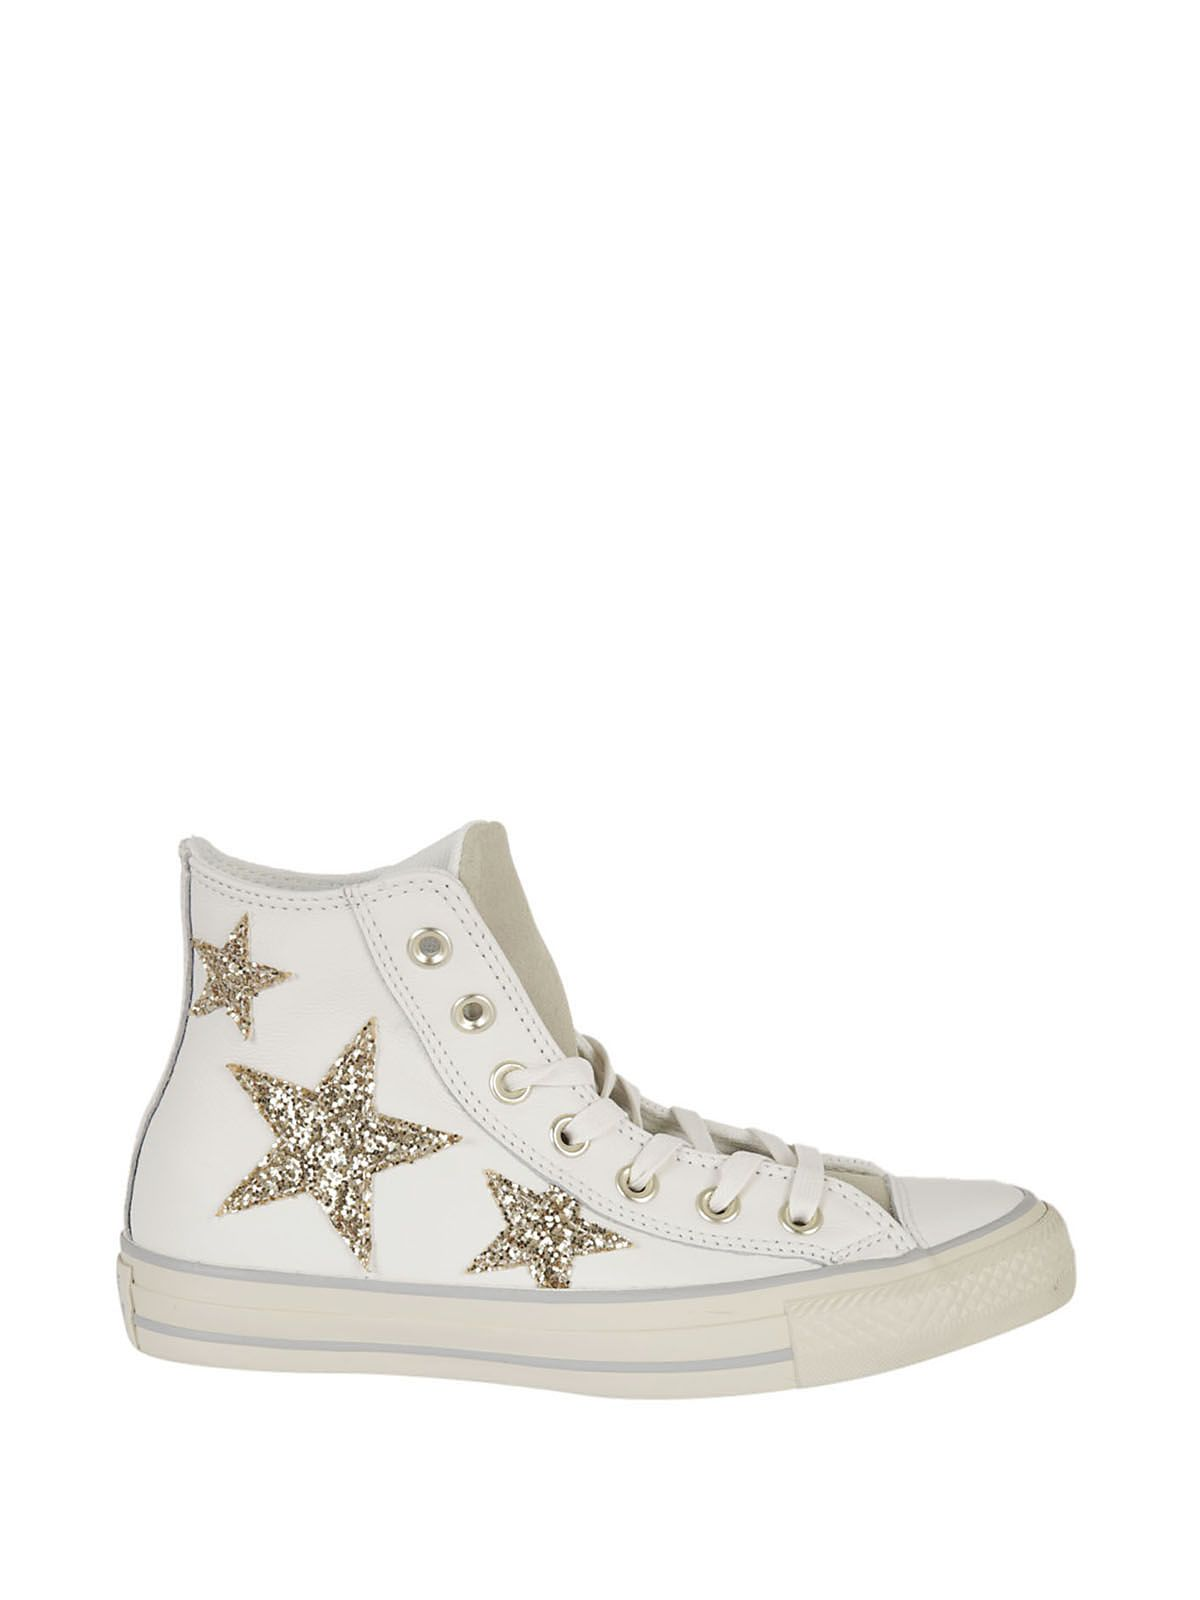 Converse Chuck Taylor All Star High Curved Eyestay Hi-top Sneakers